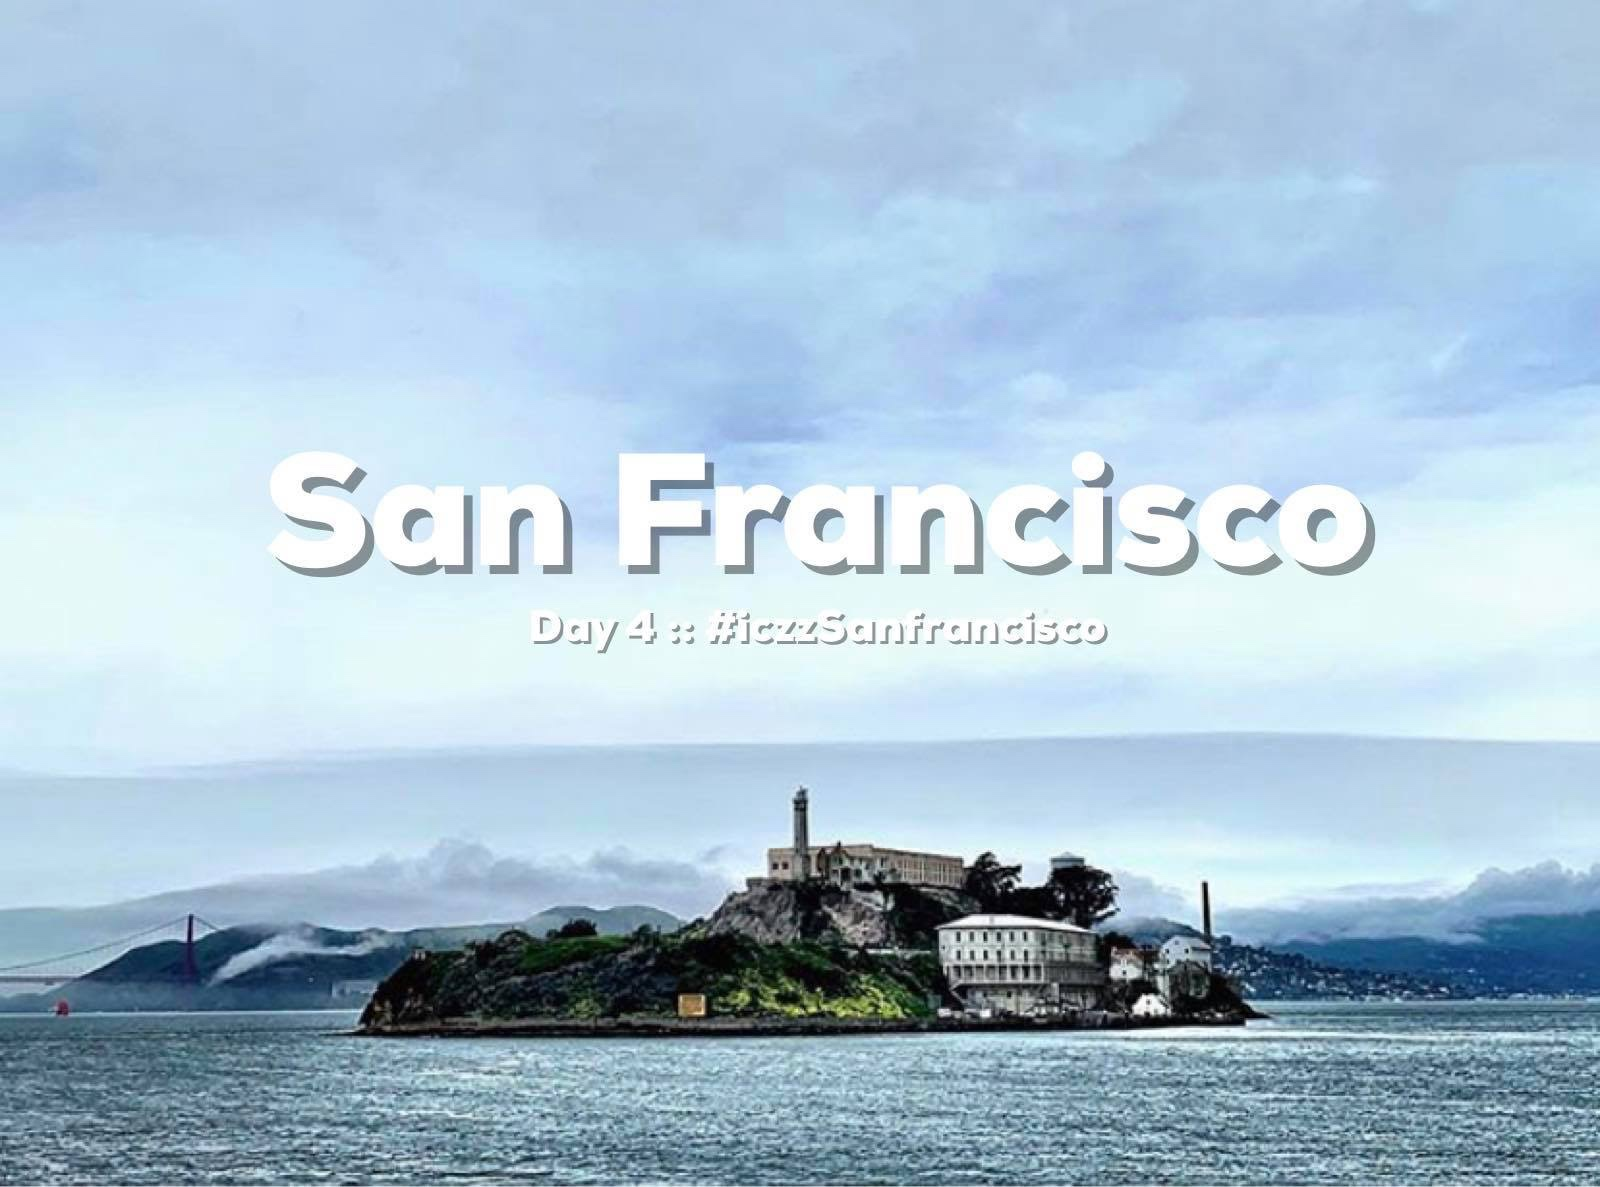 รีวิวเที่ยว San Francisco USA :: San Francisco USA 101 Top things to do in San Francisco USA EP.4/6 @iczz #iczzSanFrancisco